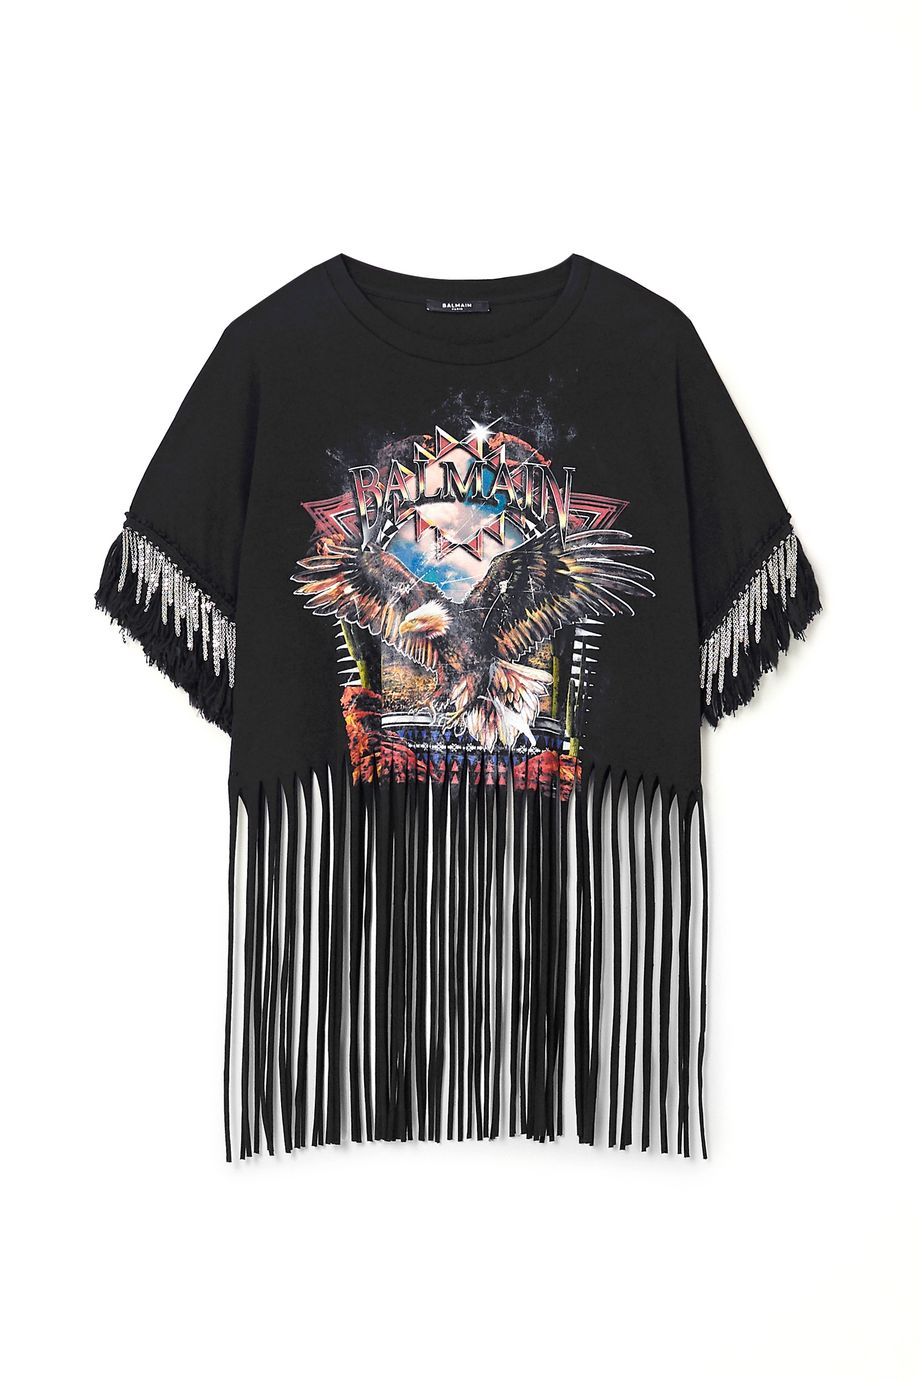 Balmain Fringed embellished printed cotton-jersey T-shirt